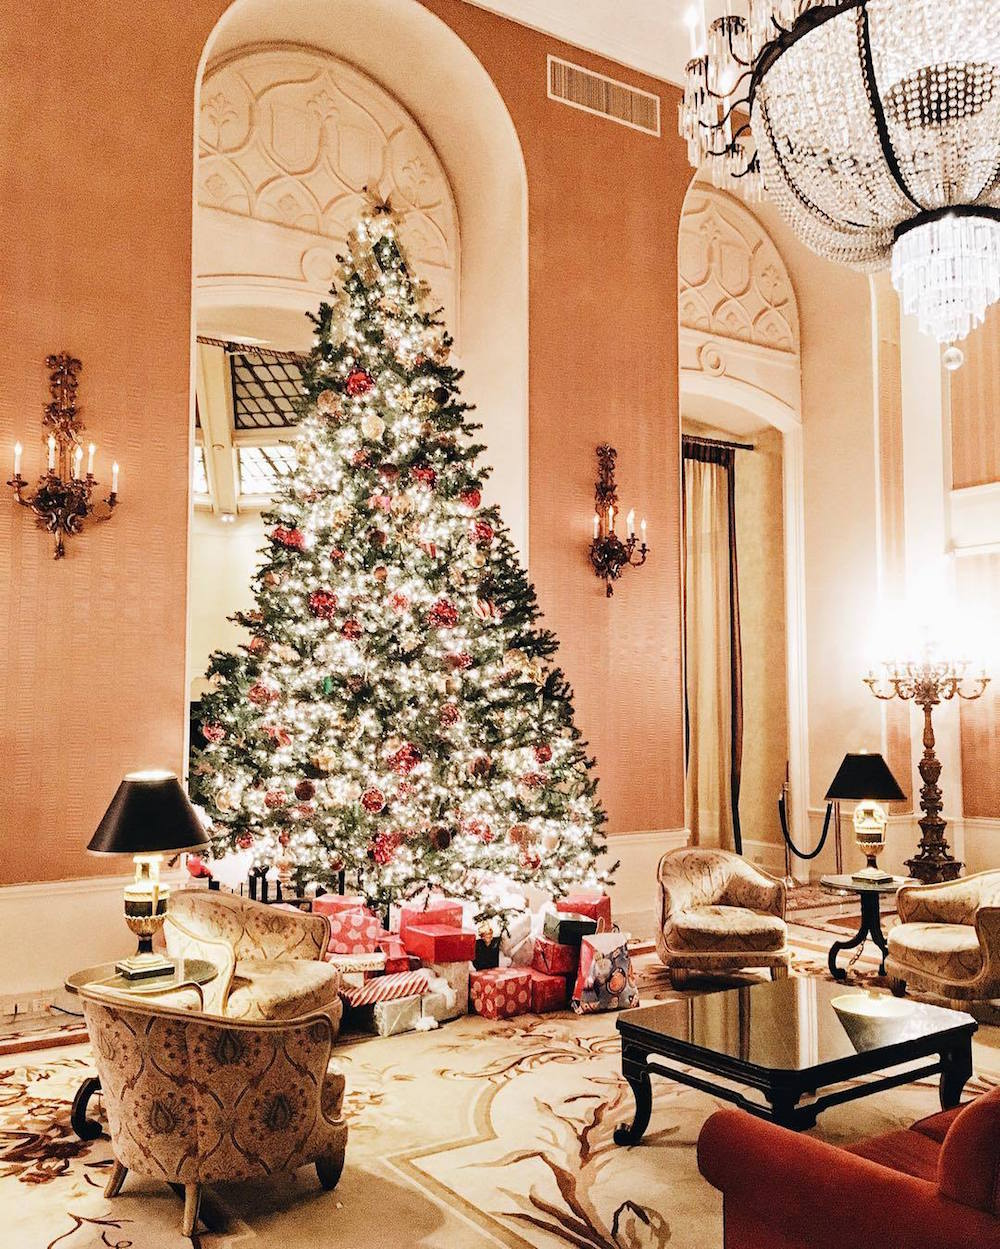 The holiday cheer at the Intercontinental Mark Hopkins Hotel